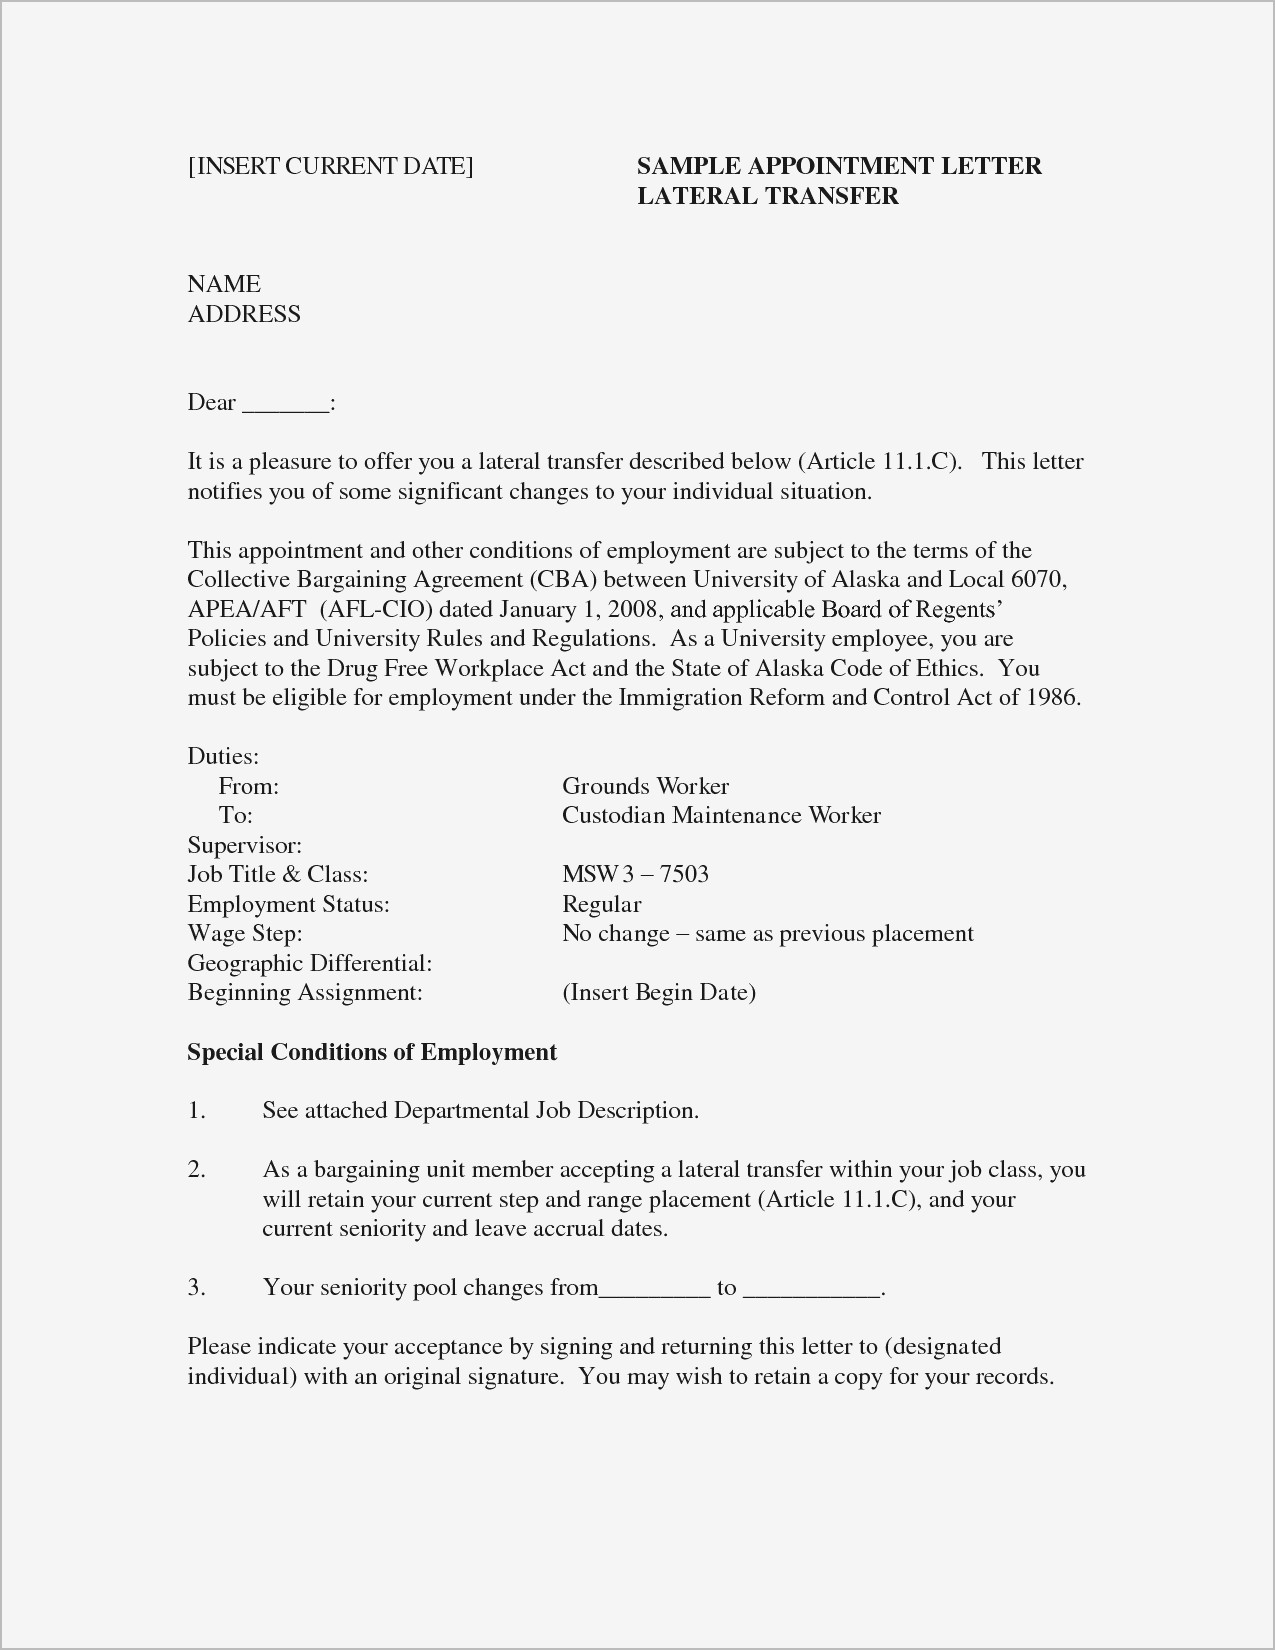 Free Resignation Letter Template Word - Free Resignation Letter Template Word Pdf format